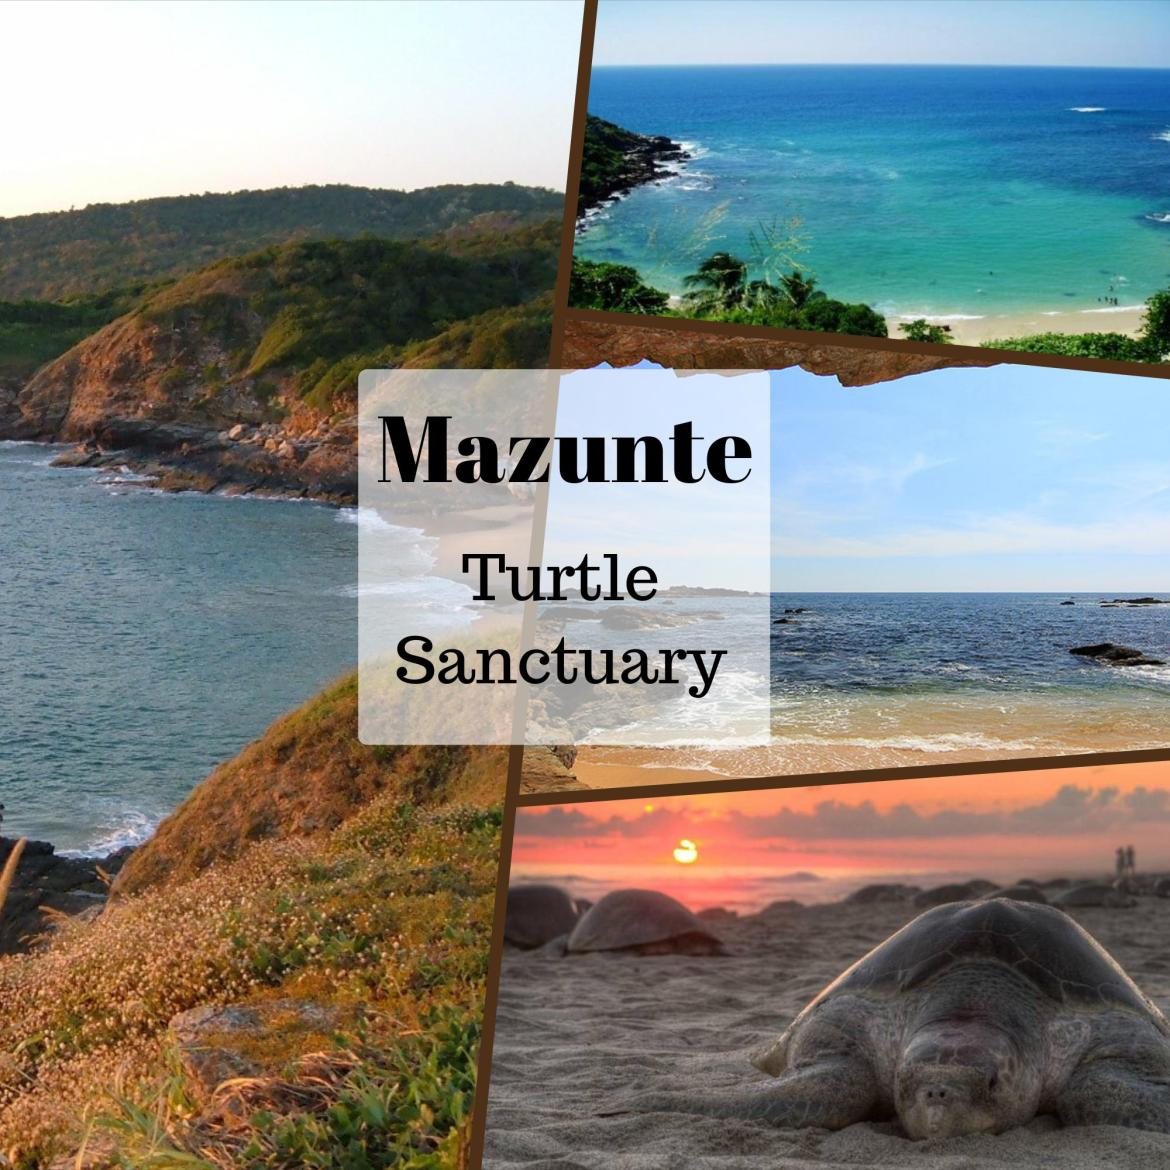 turtle sanctuary mazunte oaxaca mexico places to visit ecotourism conservation